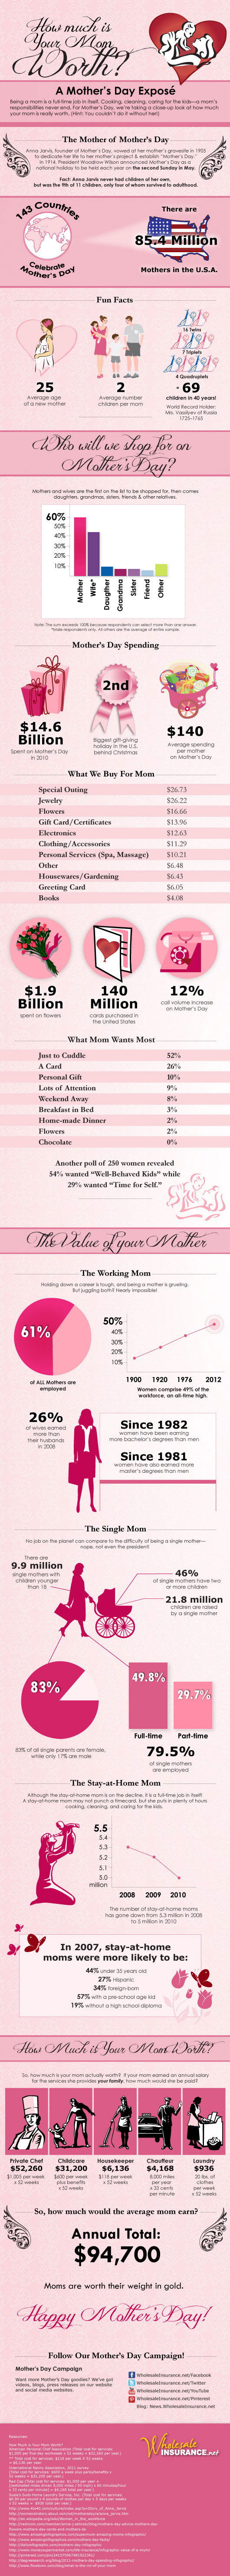 Infographic – How much is your mom worth?